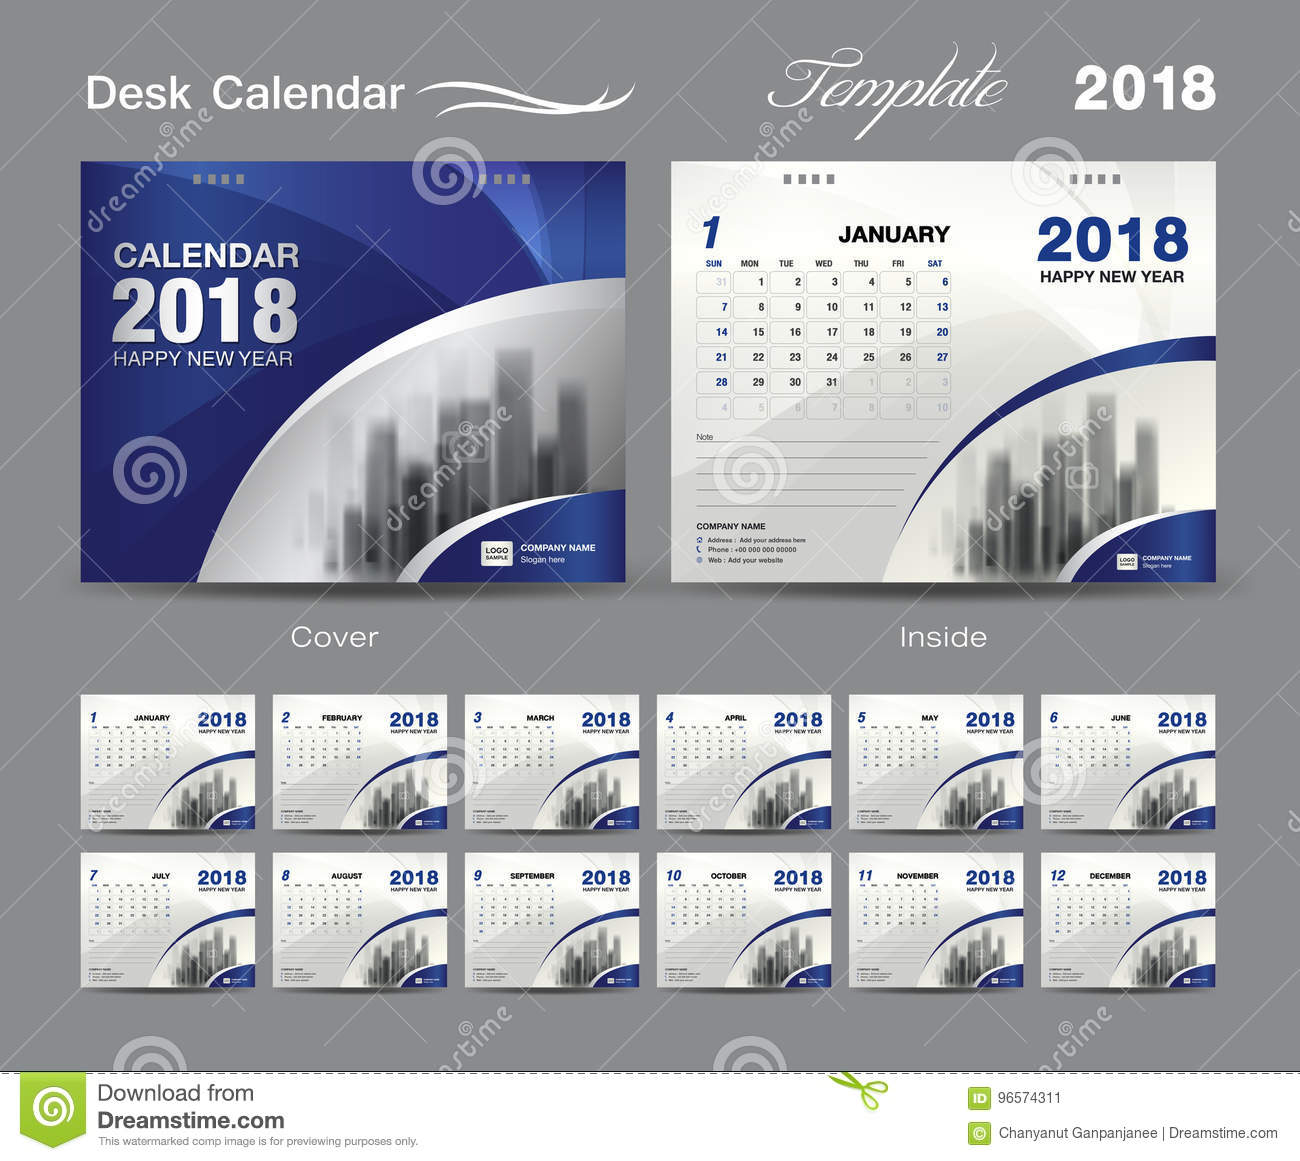 Calendar Design Free Vector : Desk calendar template design blue cover layout